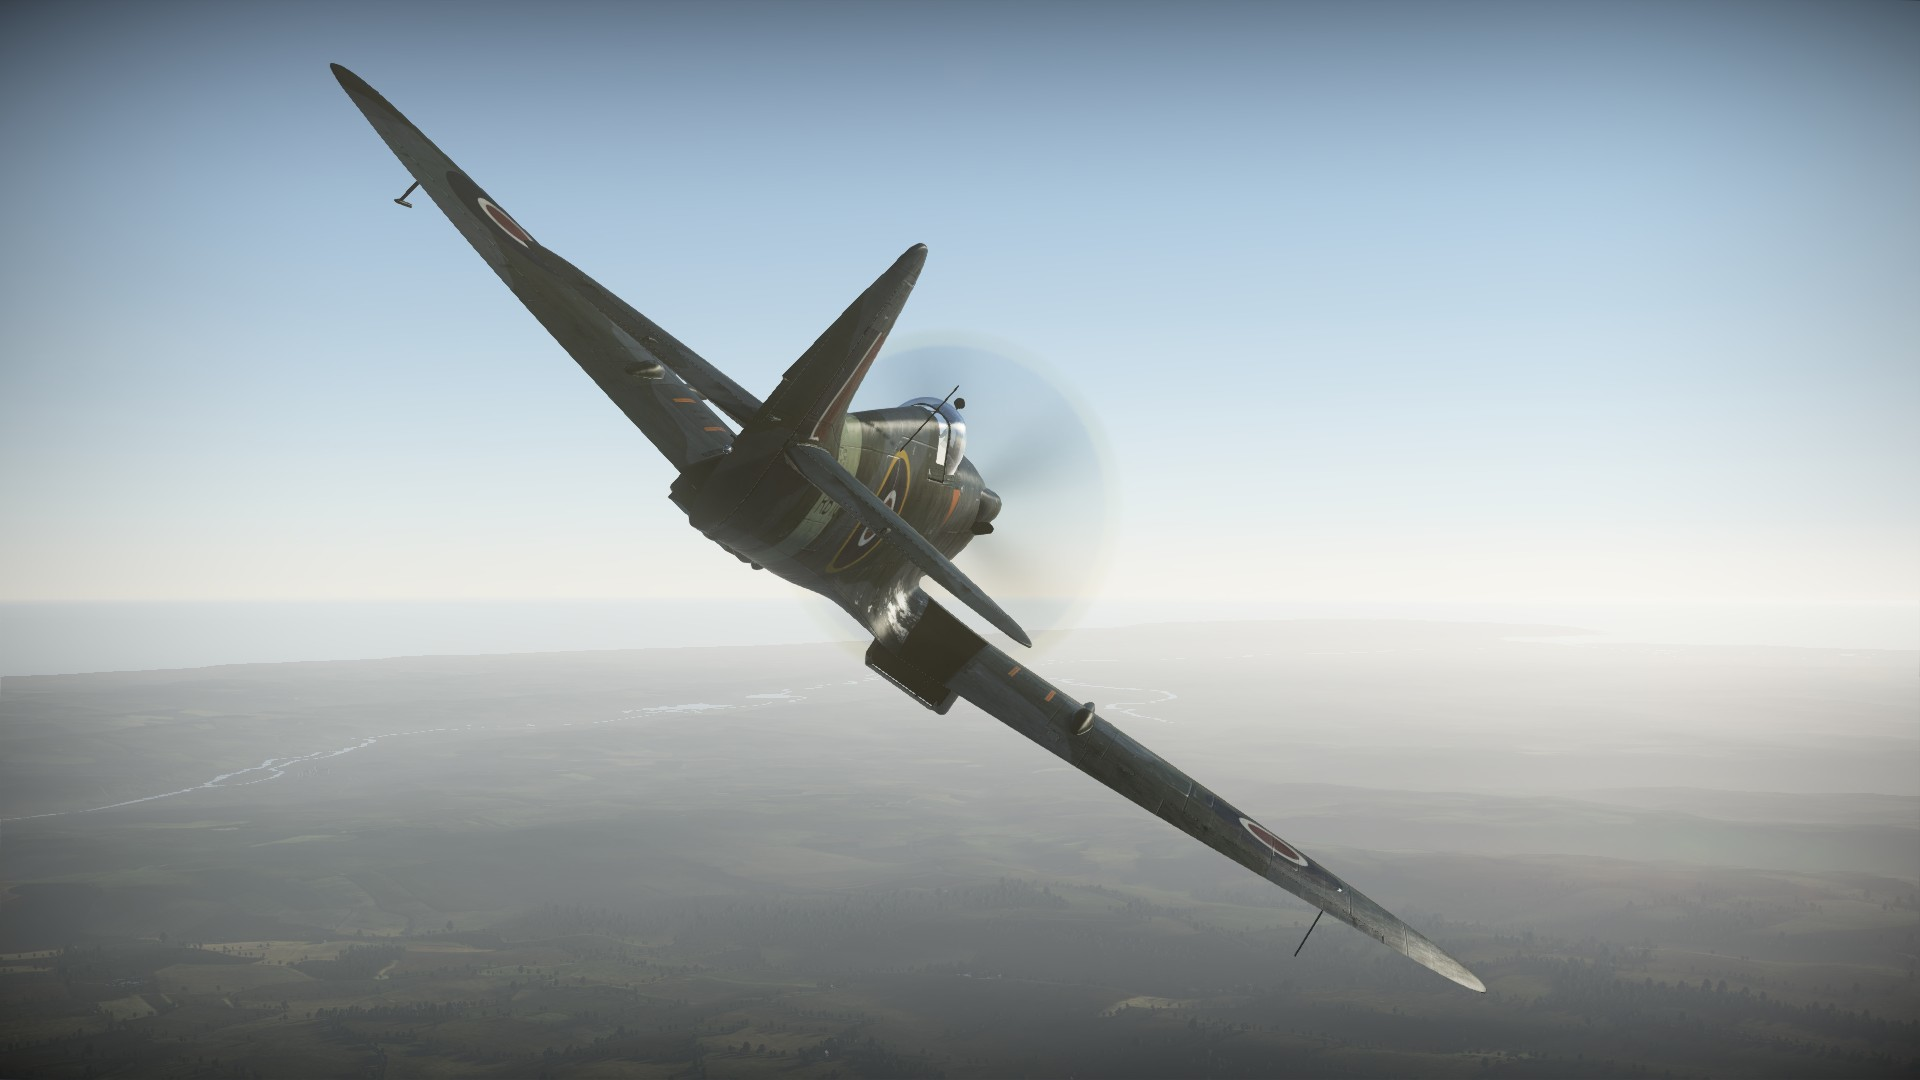 1920x1080 [Development]Spitfire Mk.XIVc - War Thunder